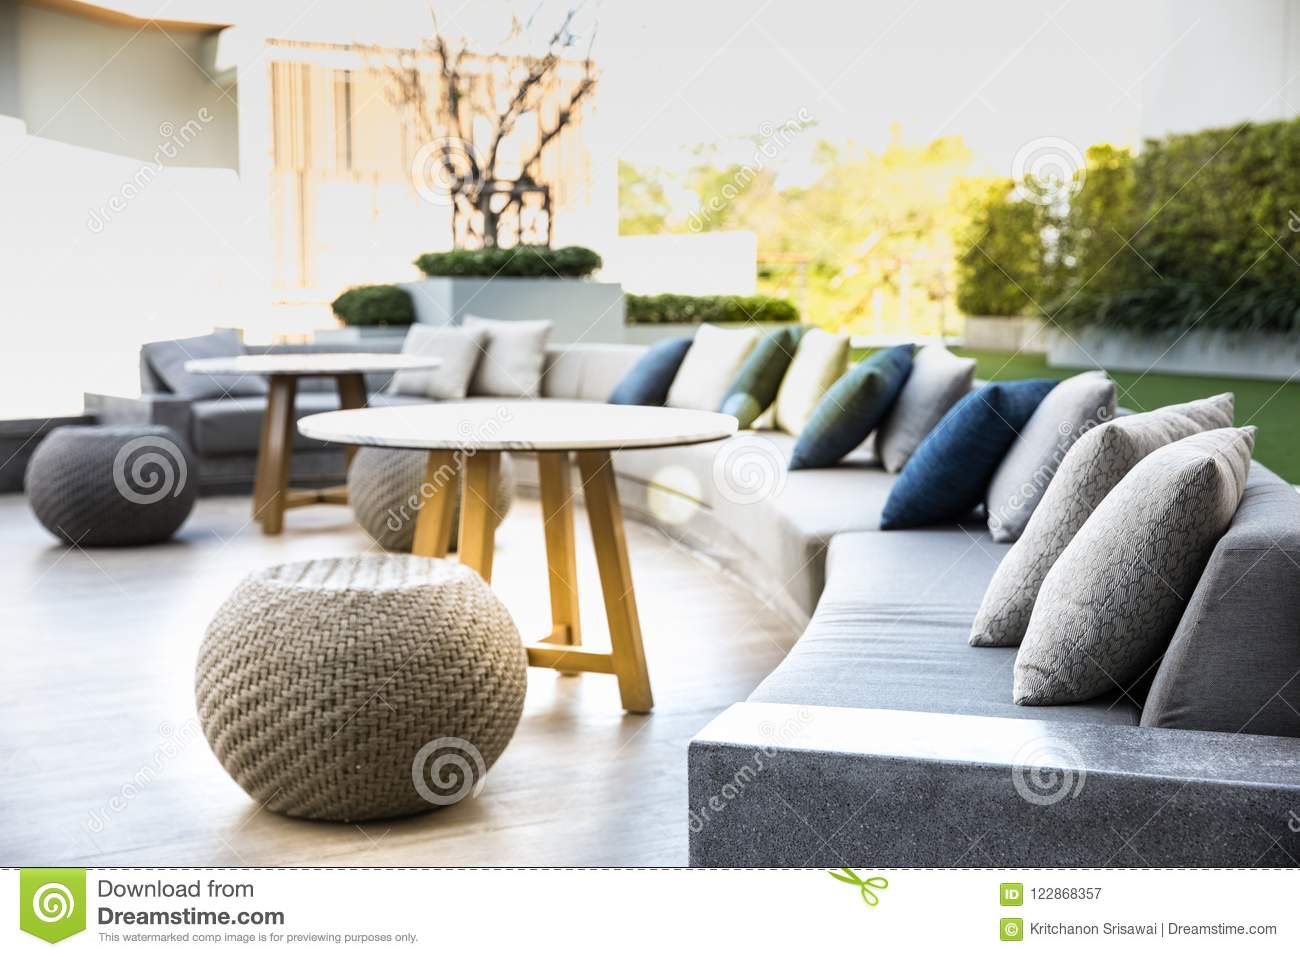 7b4d0ab8f9d Big Comfort Cushion Sofa With Cozy Pillows. Stock Image - Image of ...